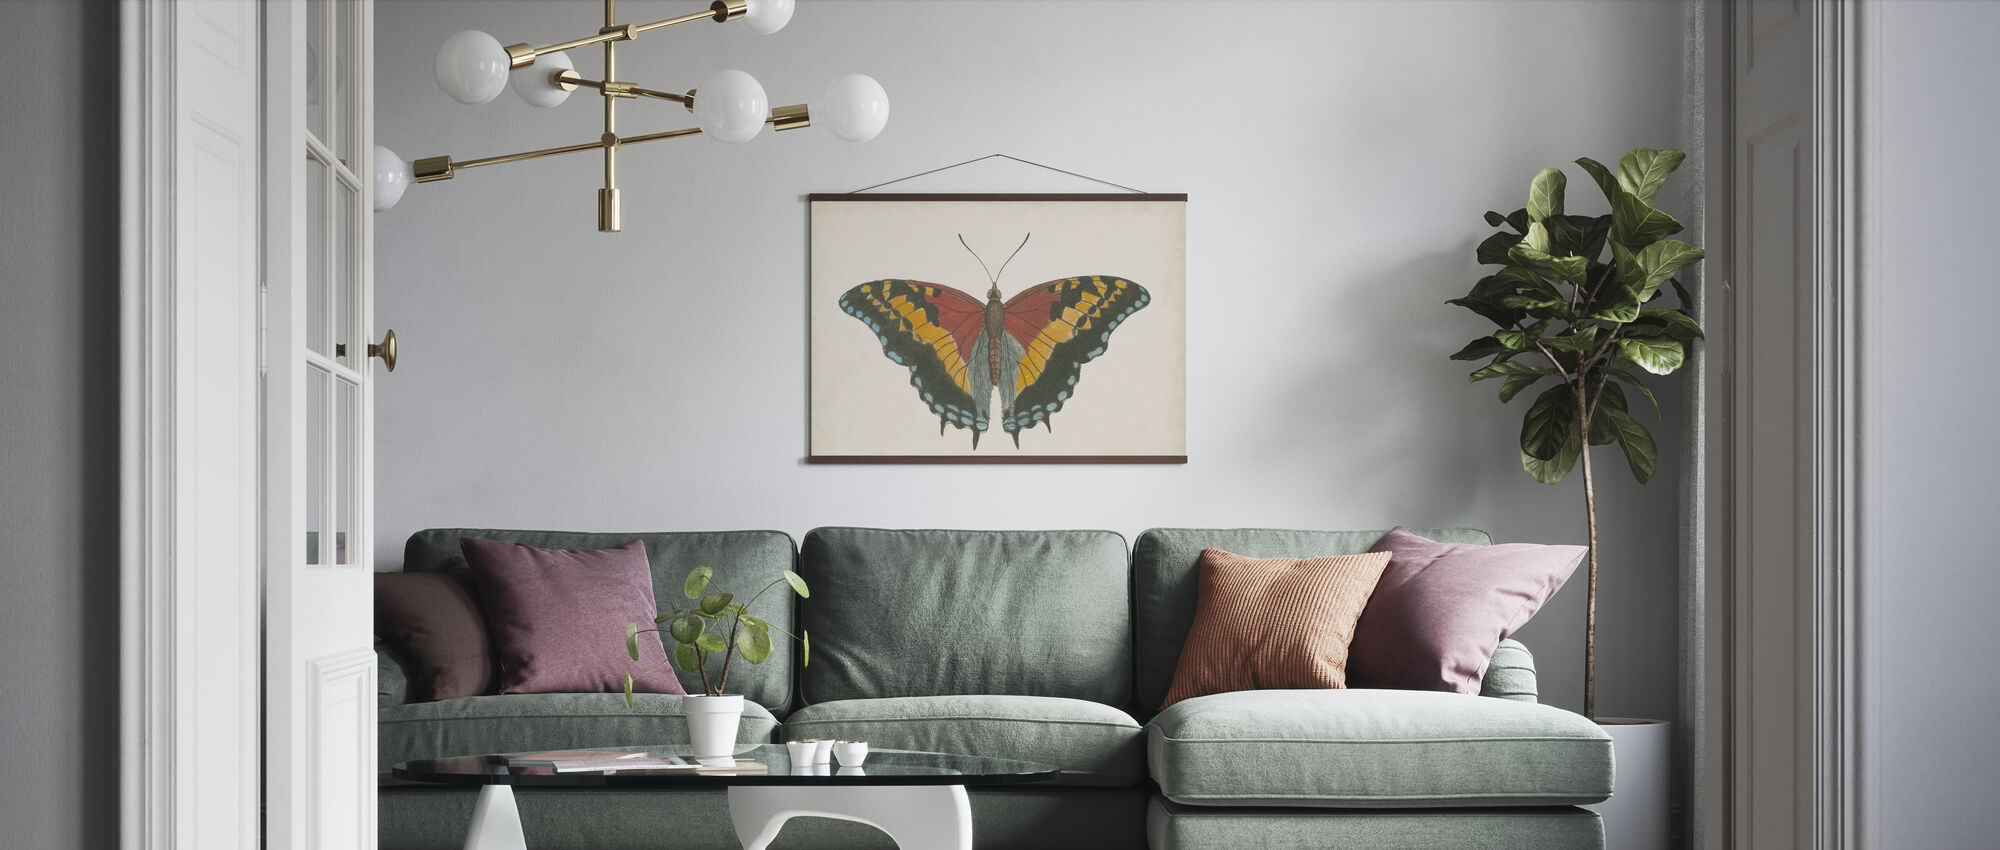 Beautiful Butterfly II - Poster - Living Room